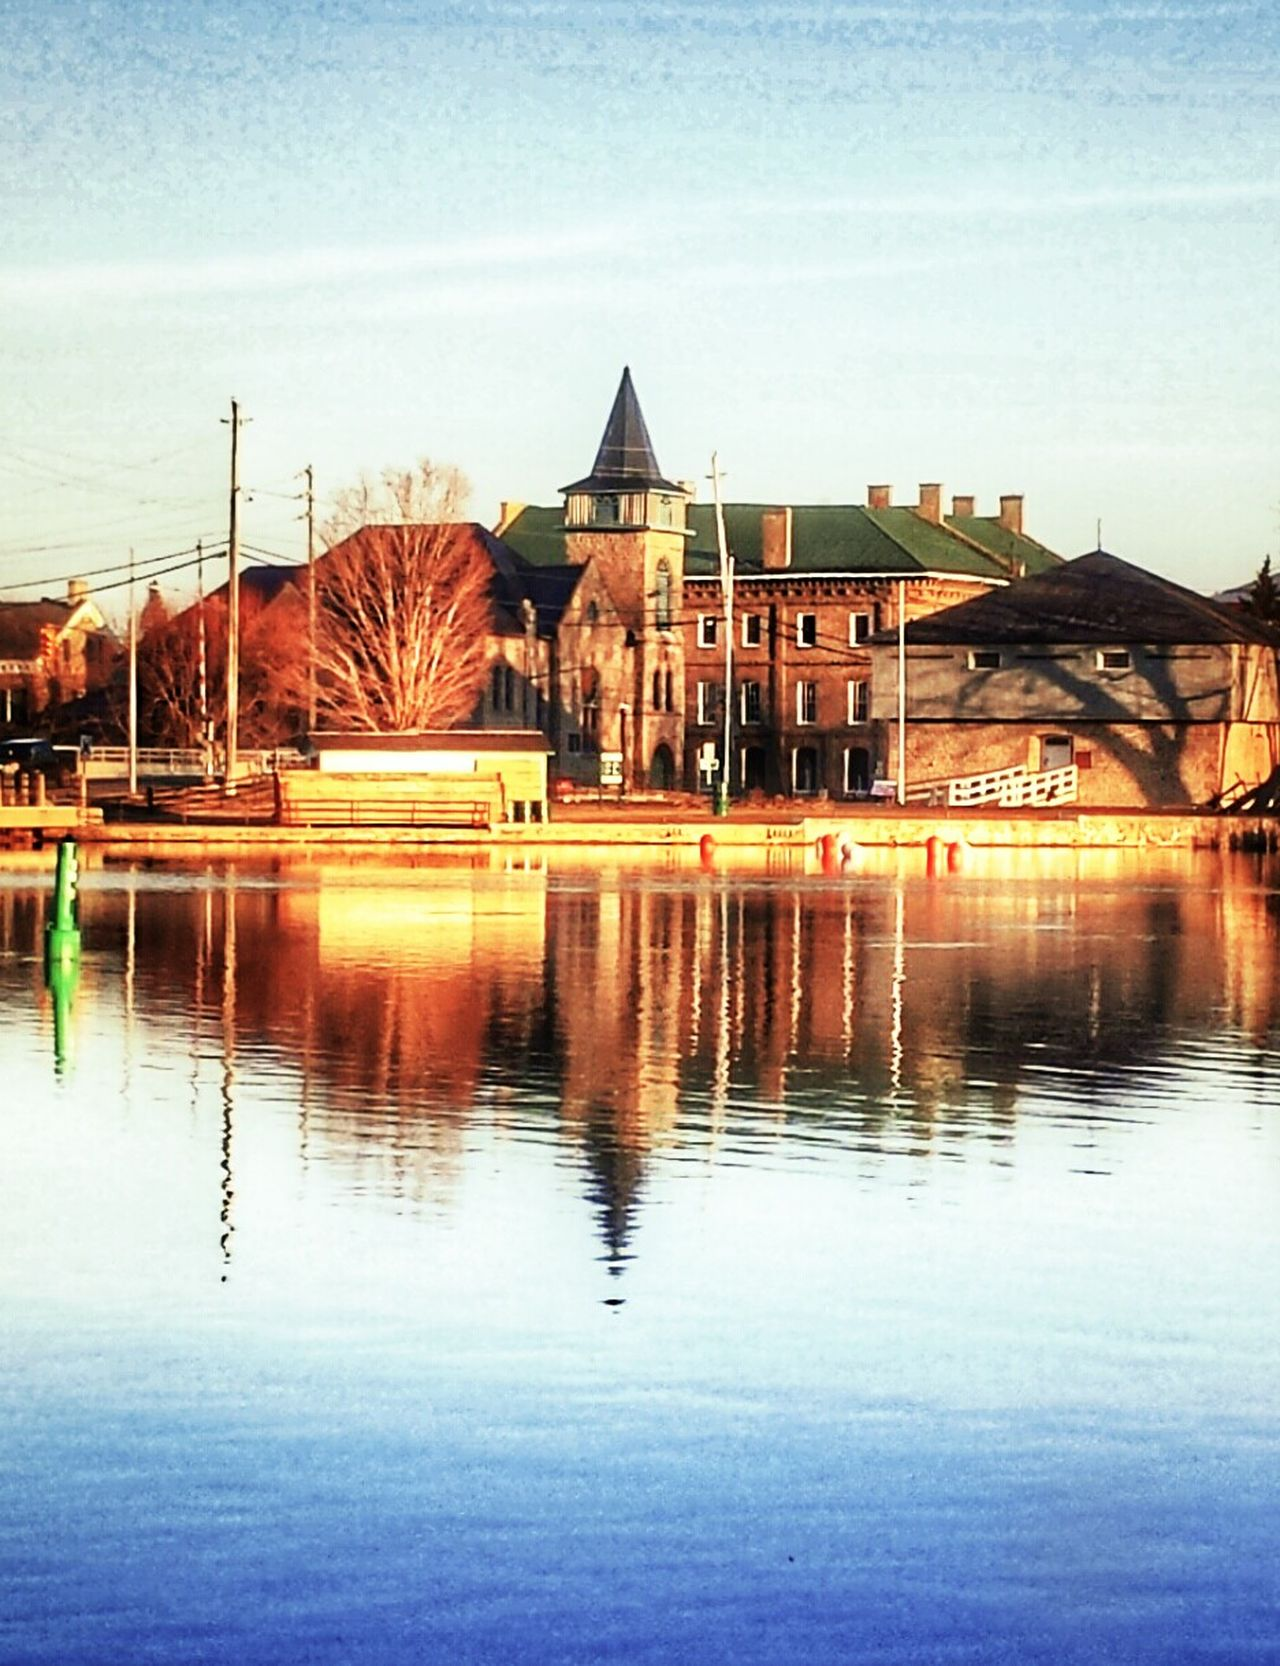 Merrickville. Reflection Architecture Built Structure Building Exterior Water Sky No People Outdoors Cloud - Sky Day Nature Fresh On Eyeem